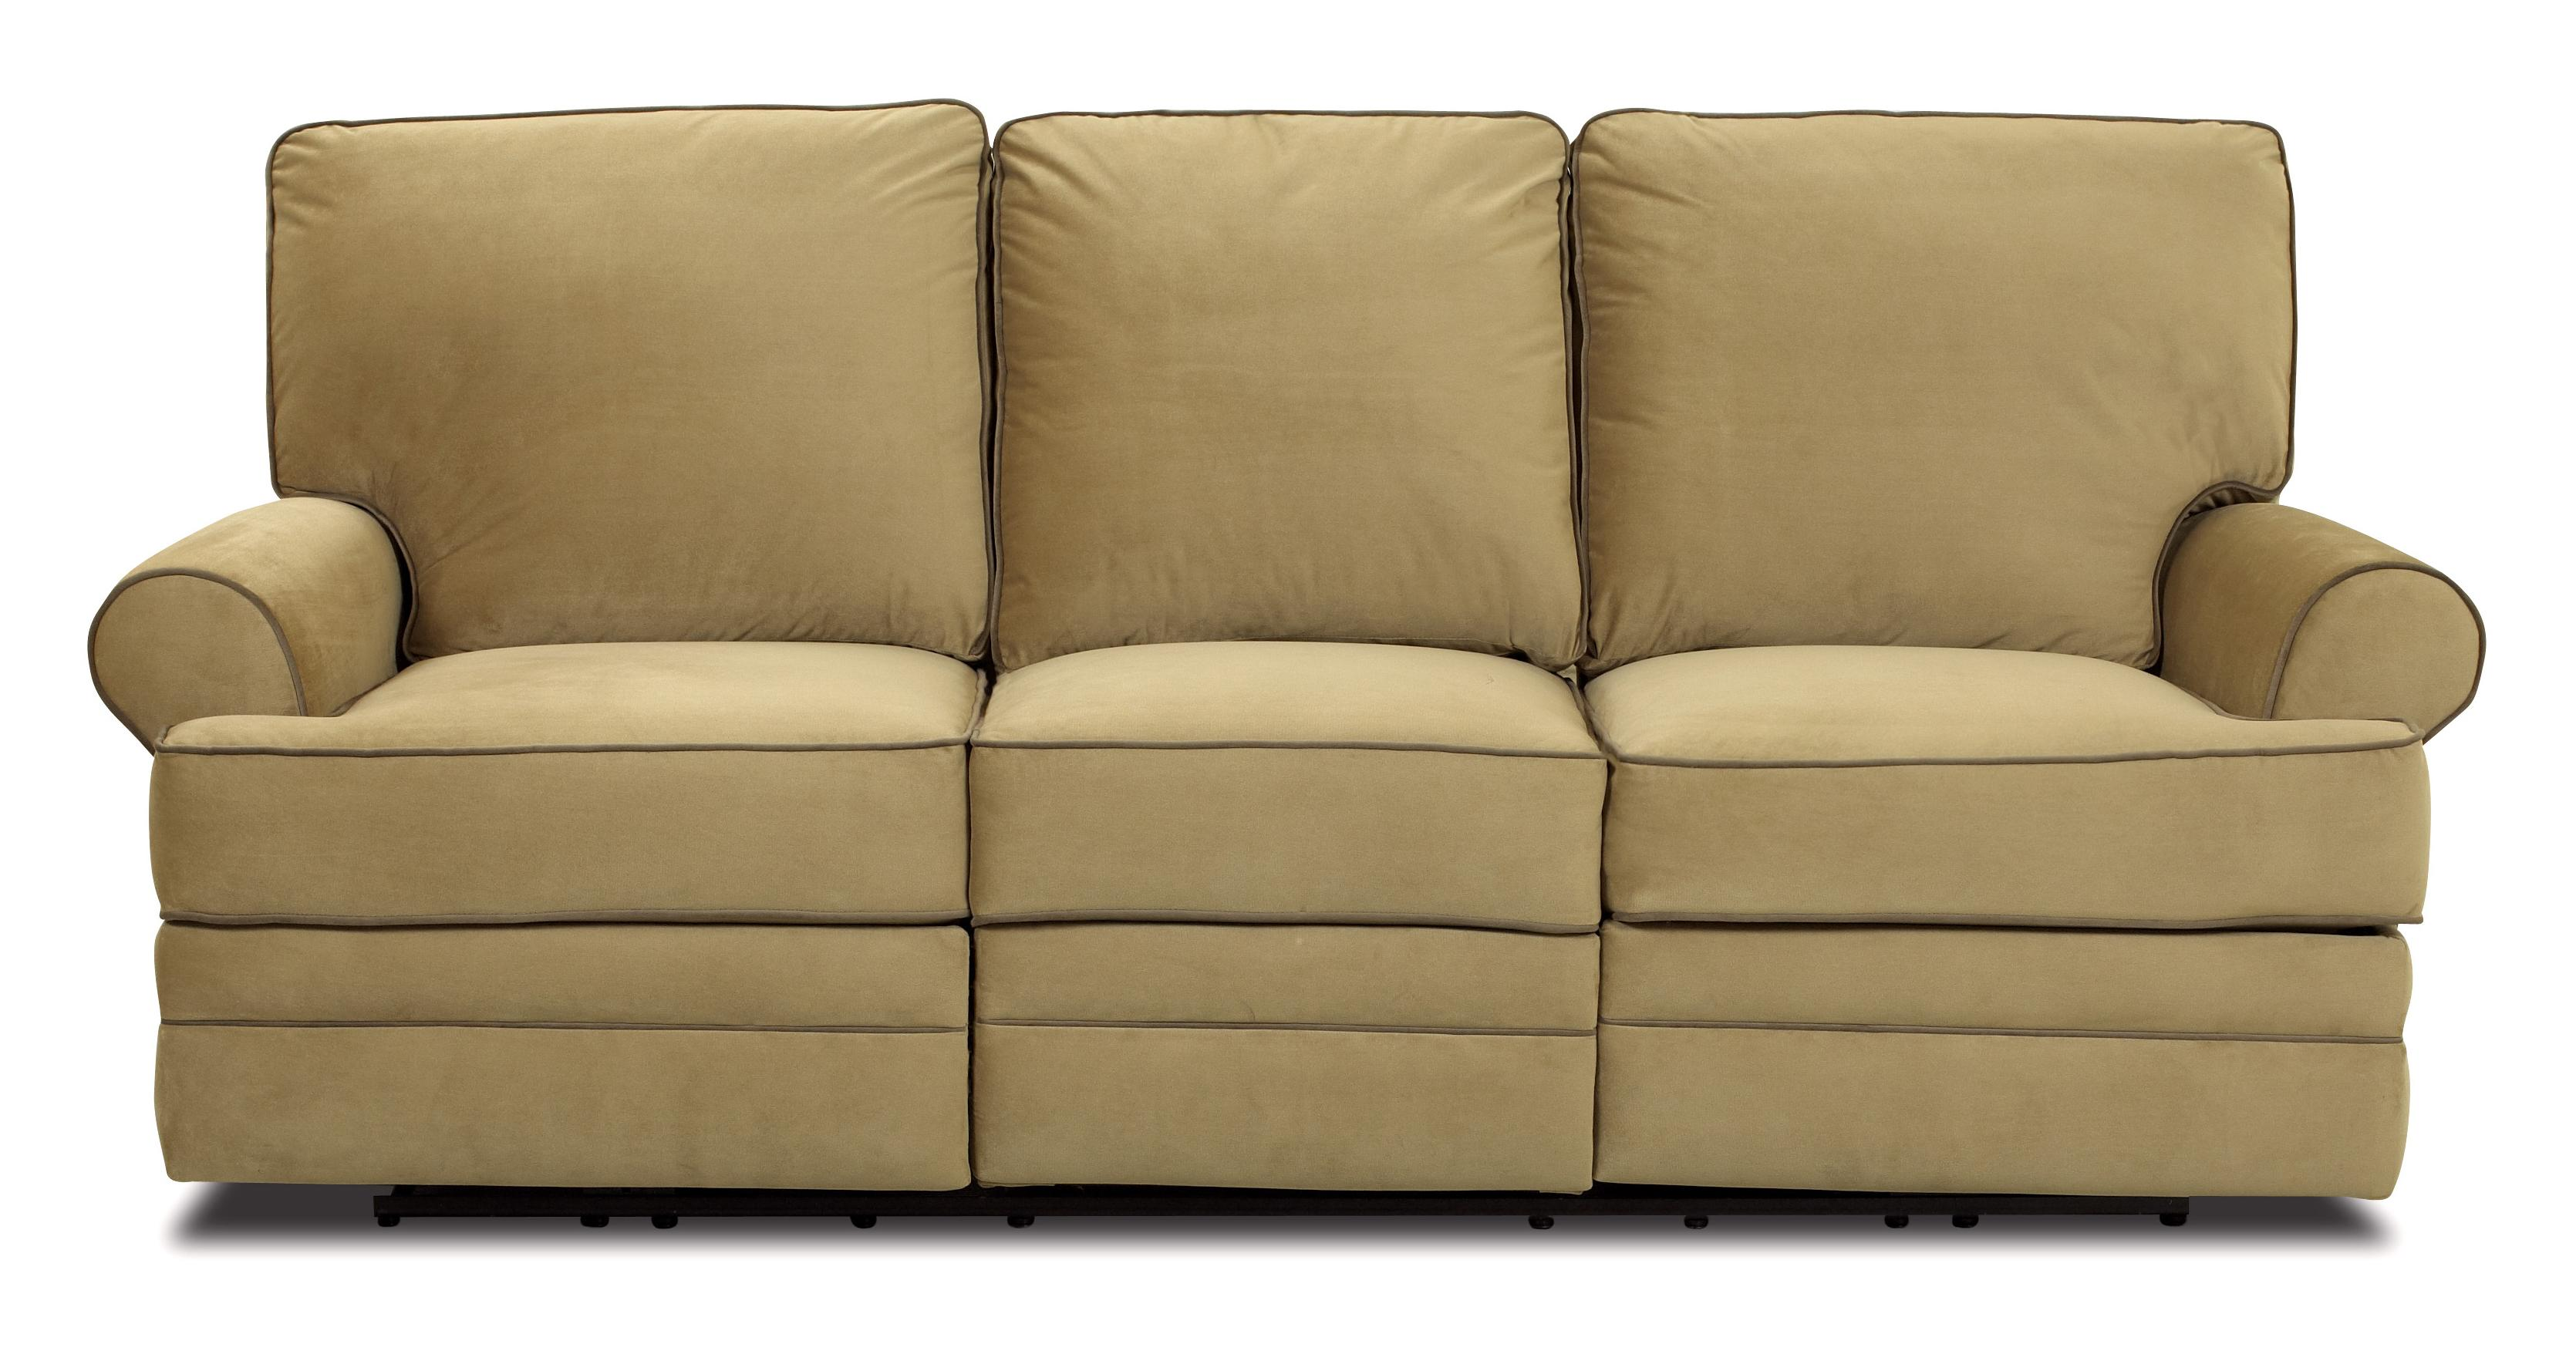 Ordinaire Power Dual Reclining Sofa